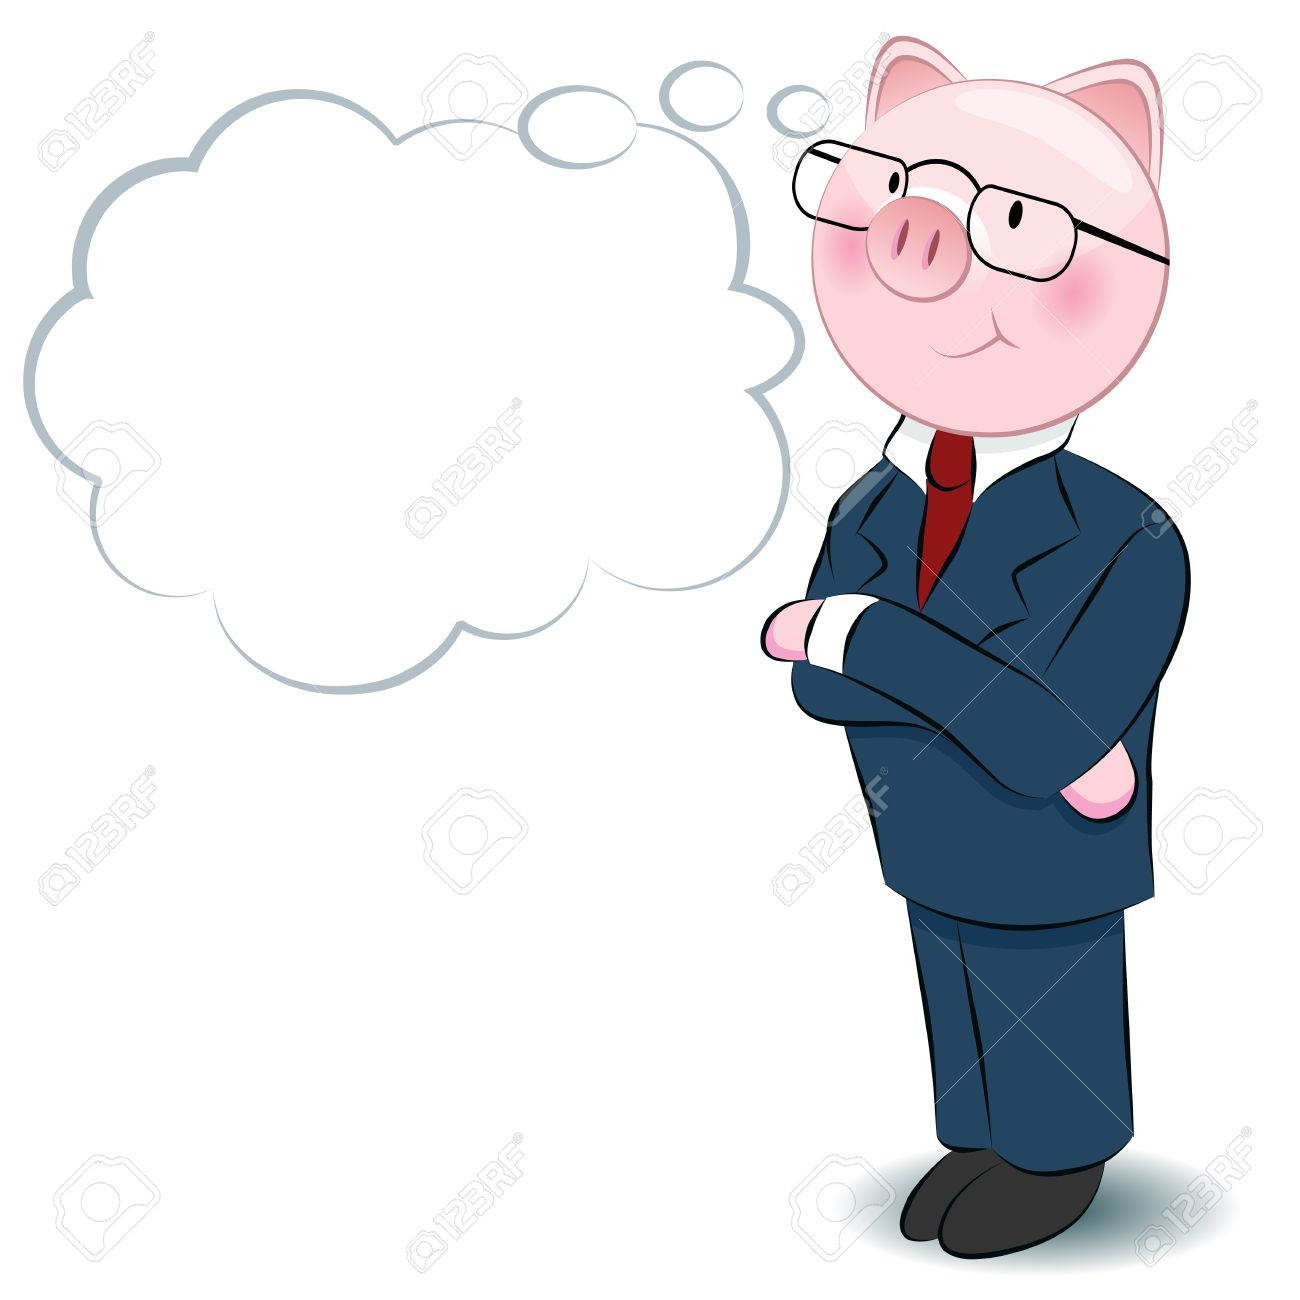 An image of a thinking businessman pig. Stock Vector - 11973780